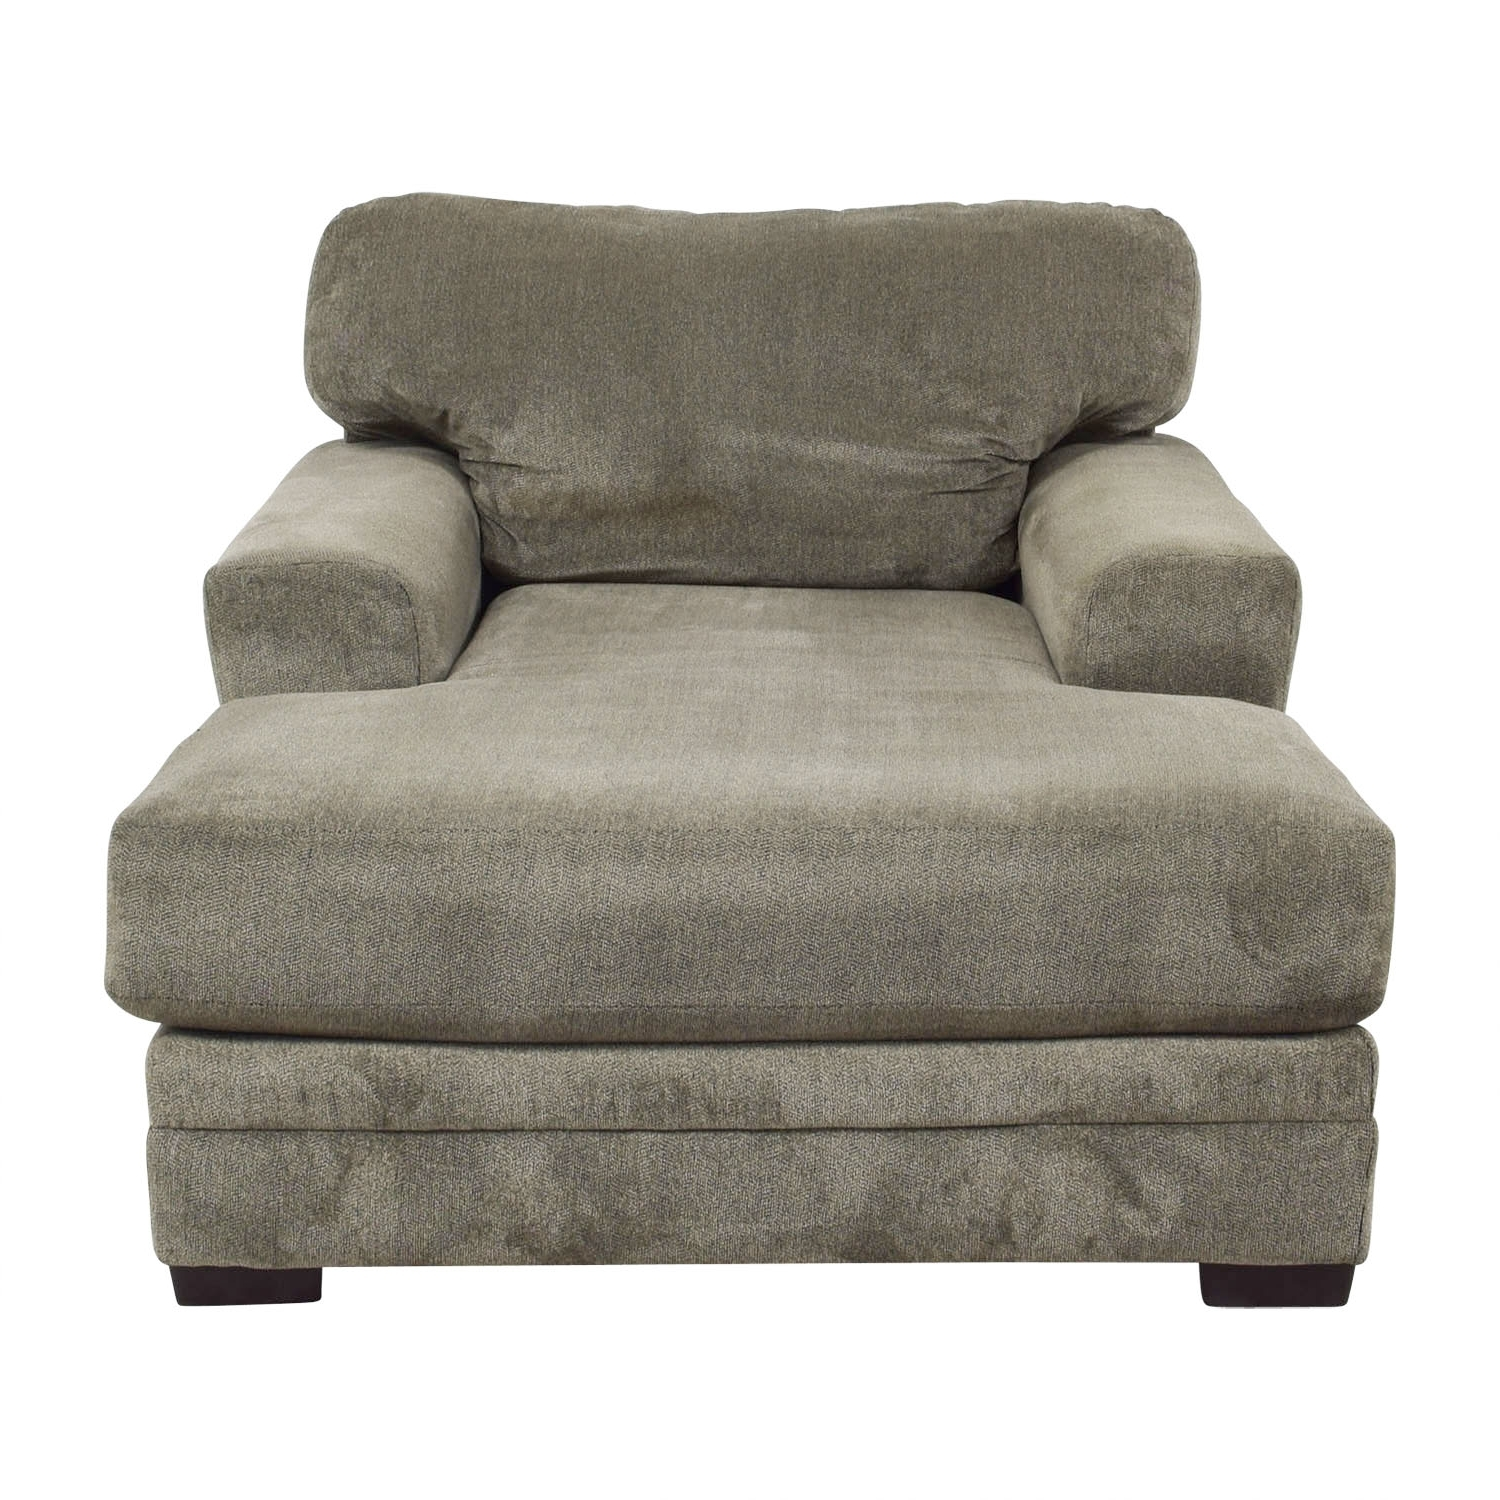 [%81% Off – Bob's Furniture Bob's Furniture Grey Chaise Lounge / Sofas Throughout Widely Used Gray Chaises|Gray Chaises Intended For Preferred 81% Off – Bob's Furniture Bob's Furniture Grey Chaise Lounge / Sofas|Famous Gray Chaises Within 81% Off – Bob's Furniture Bob's Furniture Grey Chaise Lounge / Sofas|Well Liked 81% Off – Bob's Furniture Bob's Furniture Grey Chaise Lounge / Sofas In Gray Chaises%] (View 3 of 15)